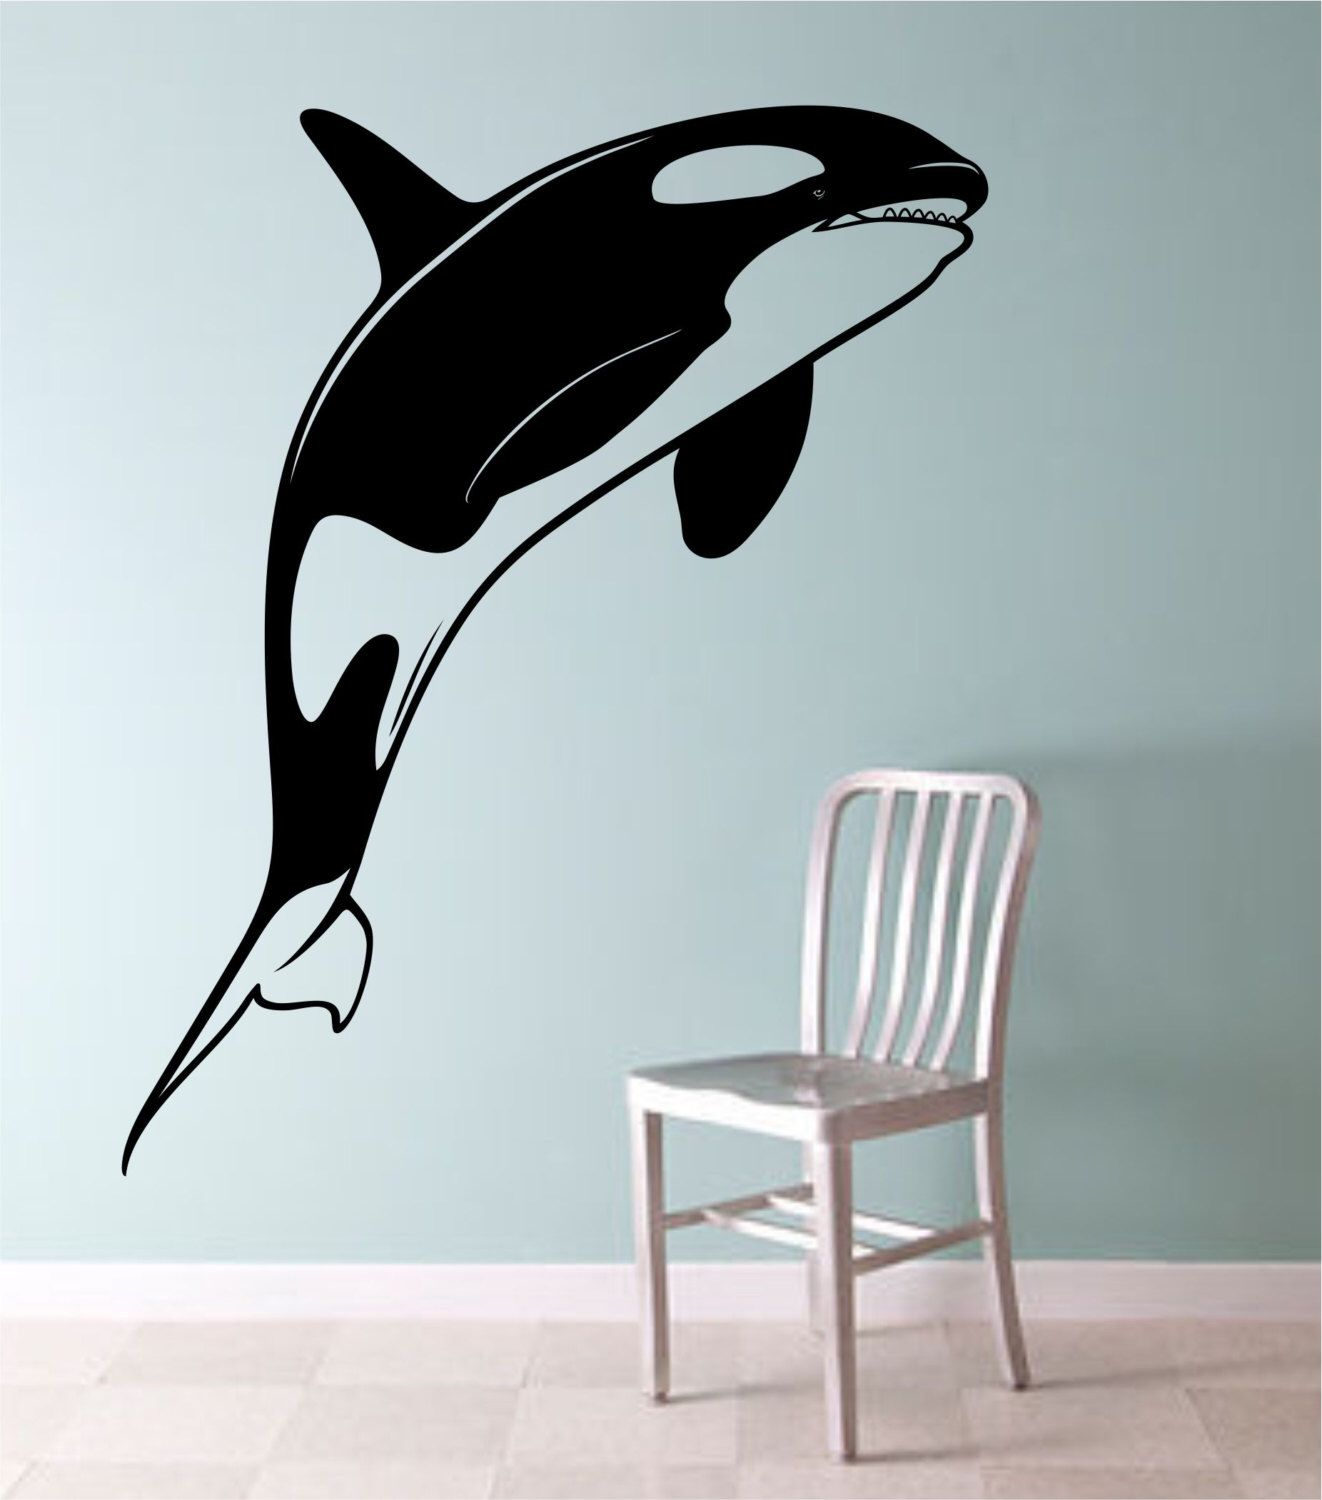 orca whale killer whale vinyl wall decal sticker art decor bedroom orca whale killer whale vinyl wall decal sticker art decor bedroom design mural cute animal lover interior design